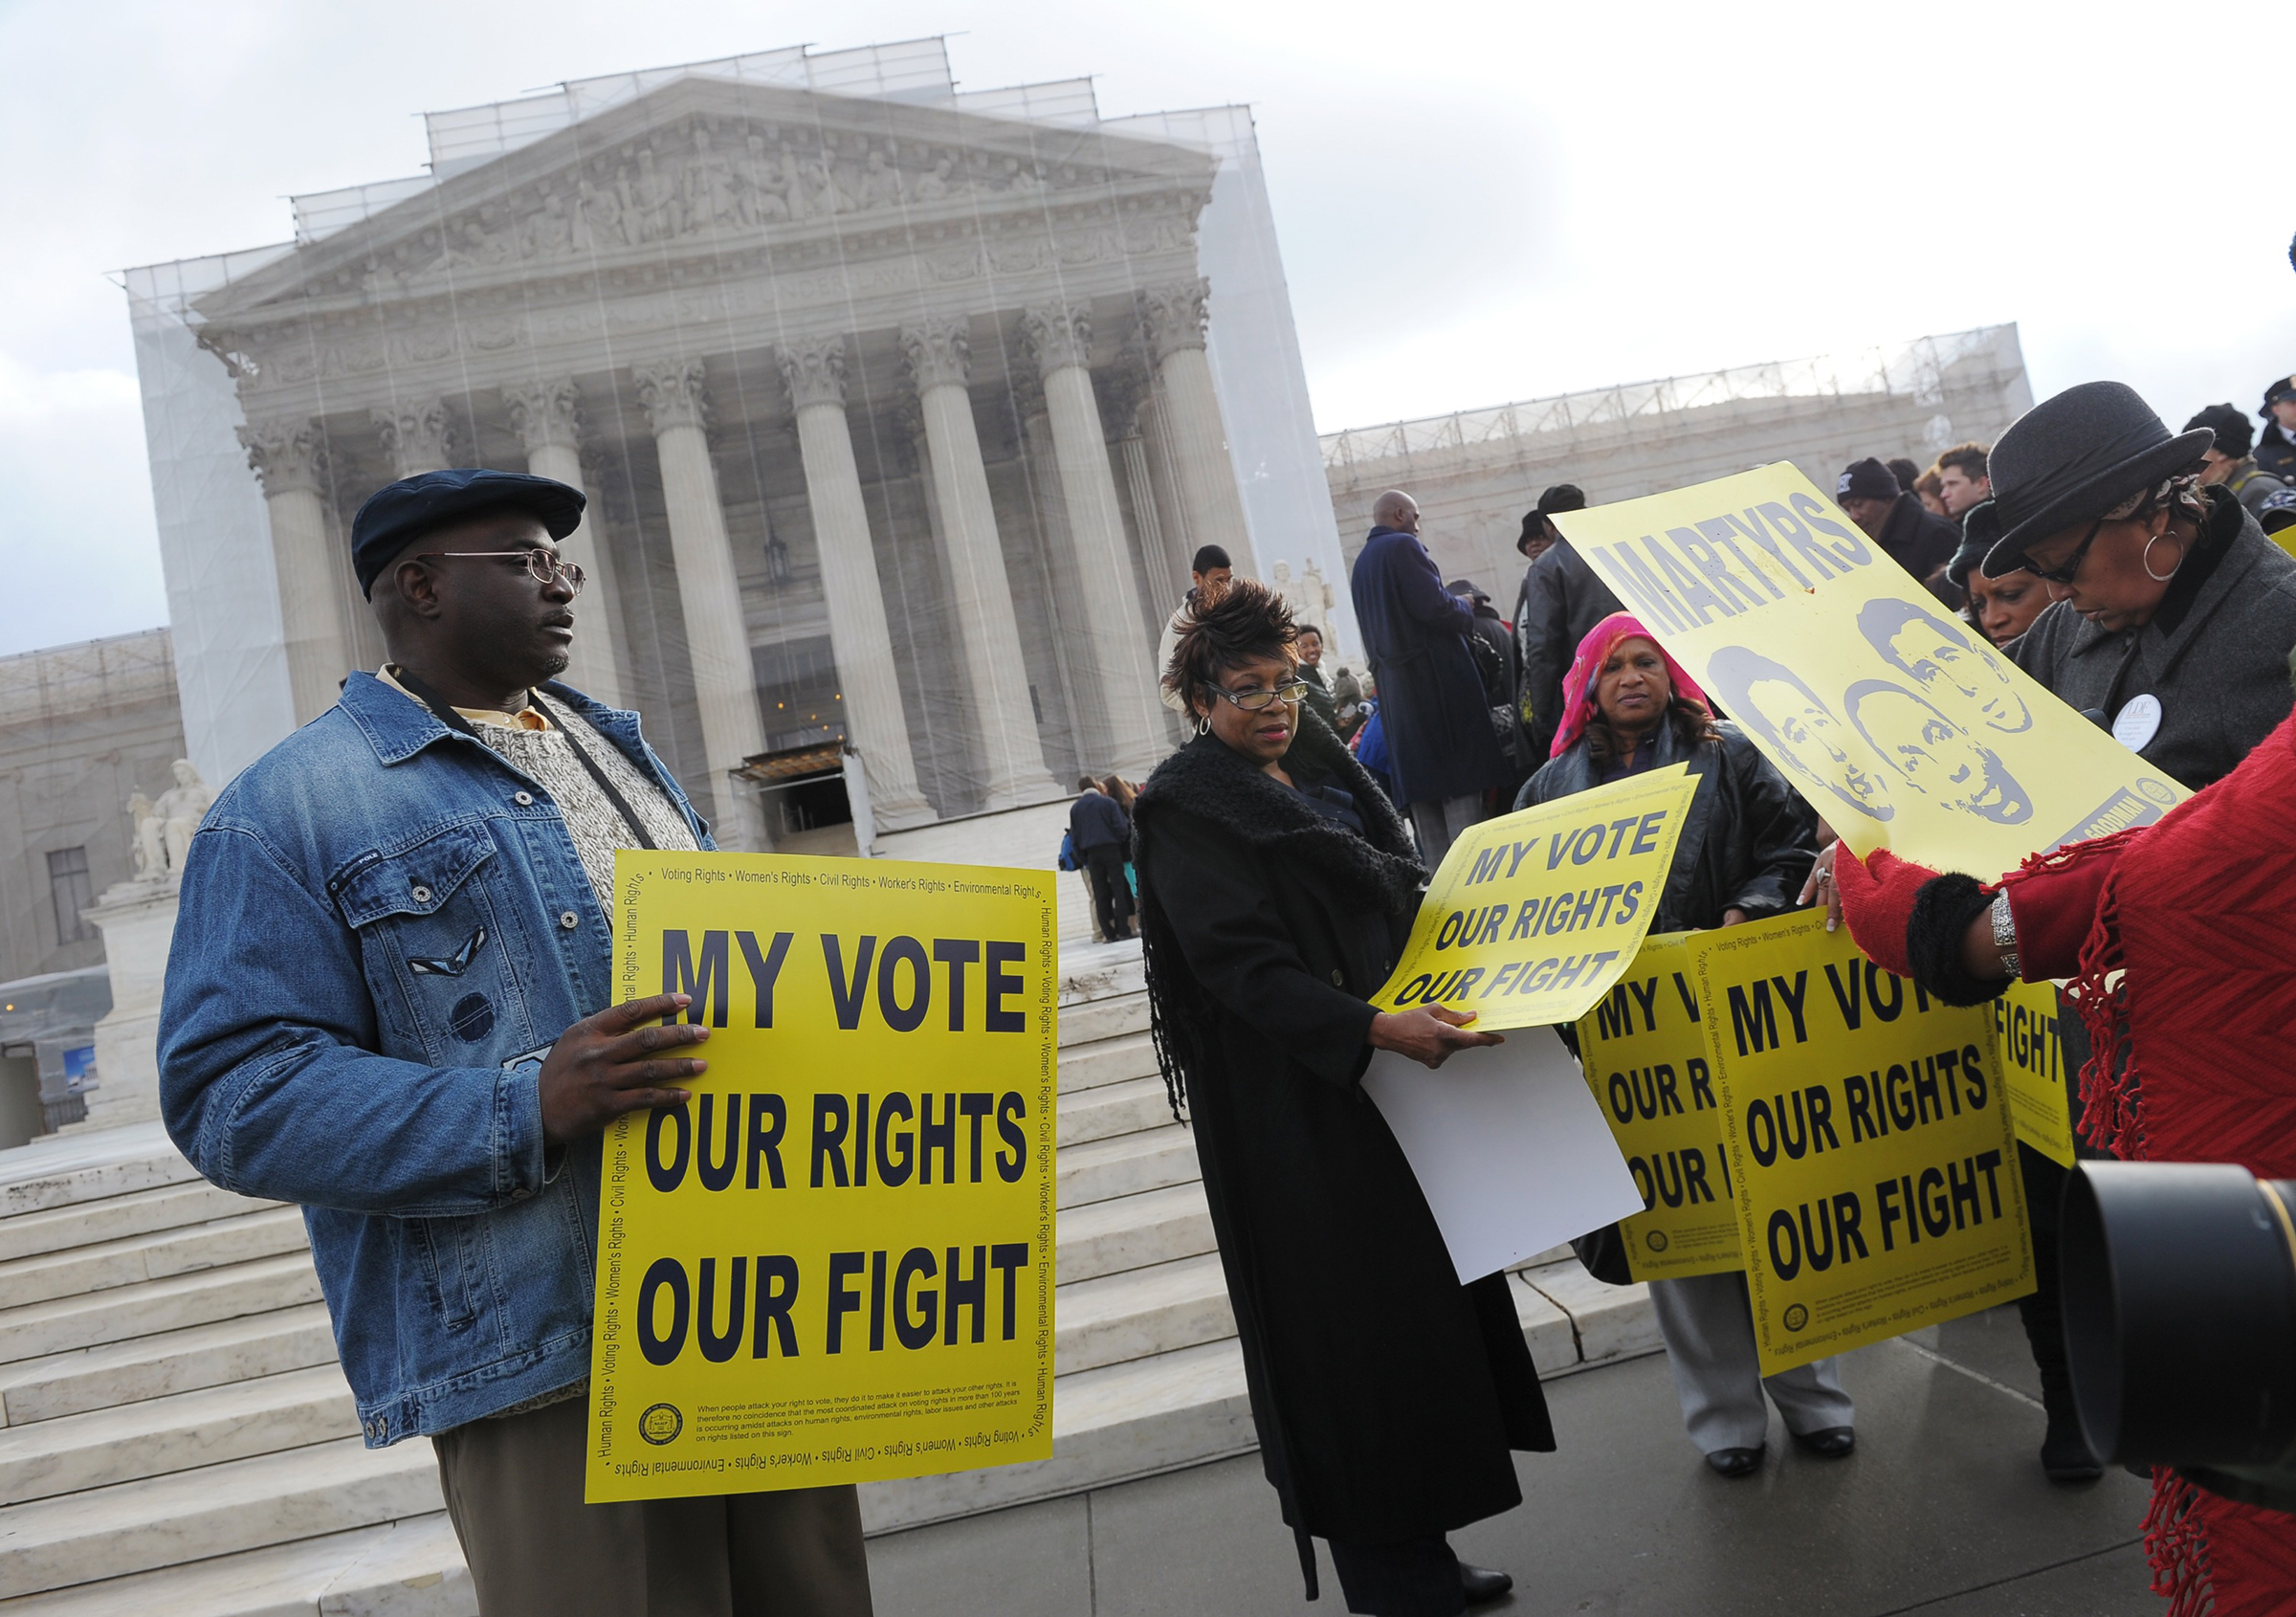 Activists distribute pro-voting rights placards outside the Supreme Court in Washington, D.C., on Feb. 27, 2013, as the Court prepares to hear Shelby County vs Holder.